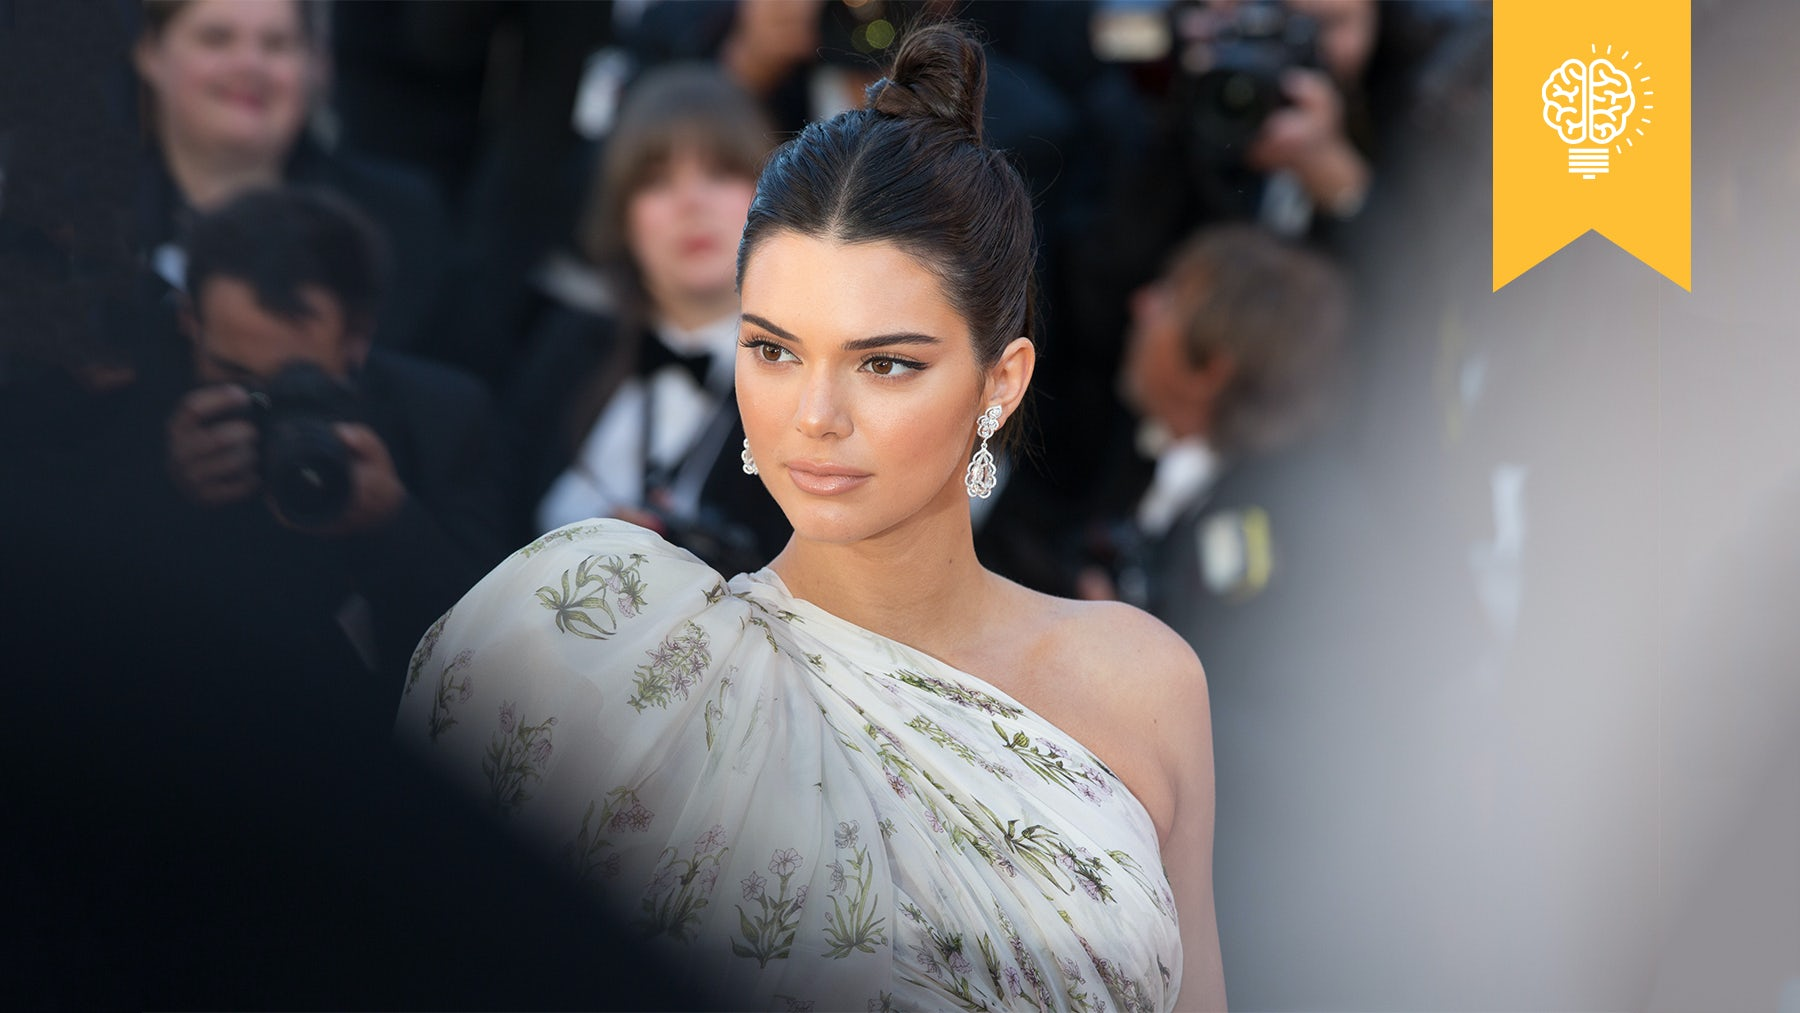 Kendall Jenner at the Cannes Film Festival last month | Source: Shutterstock